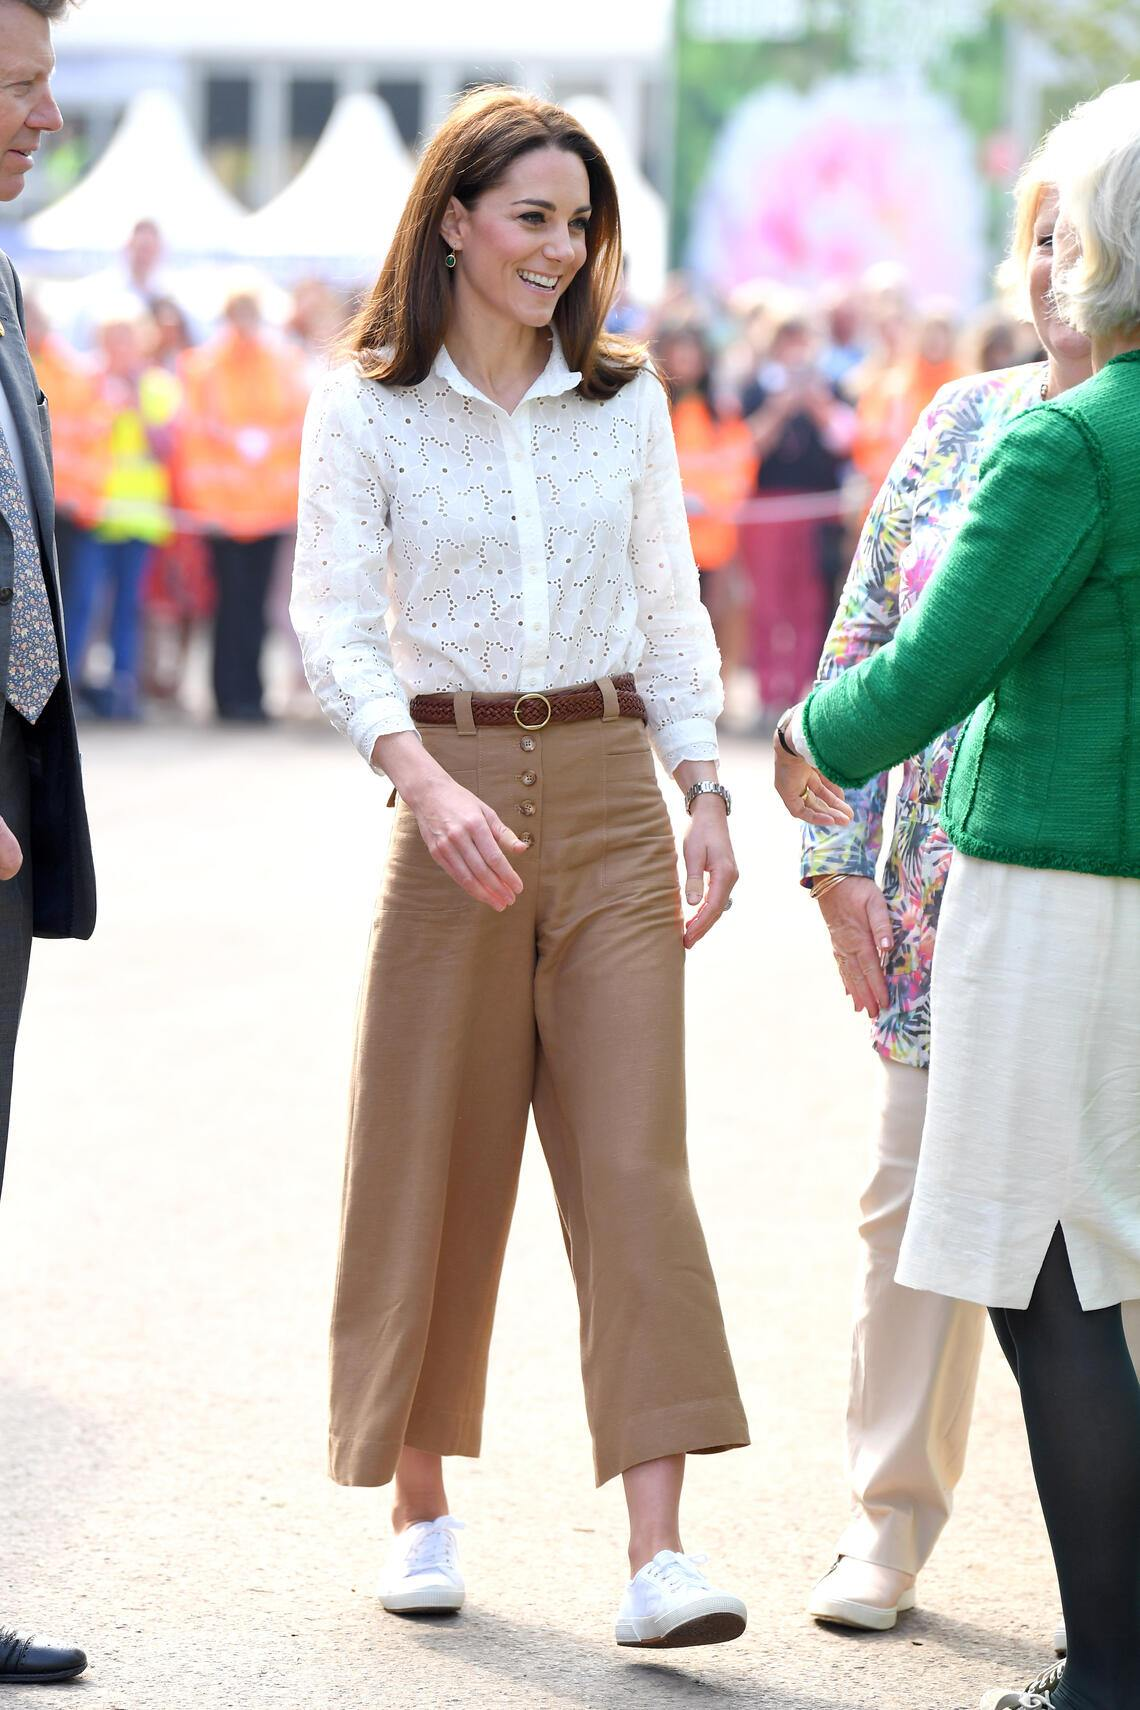 LONDON, ENGLAND - MAY 20: Catherine, Duchess of Cambridge attends her Back to Nature Garden at the RHS Chelsea Flower Show 2019 press day at Chelsea Flower Show on May 20, 2019 in London, England. (Photo by Karwai Tang/WireImage)